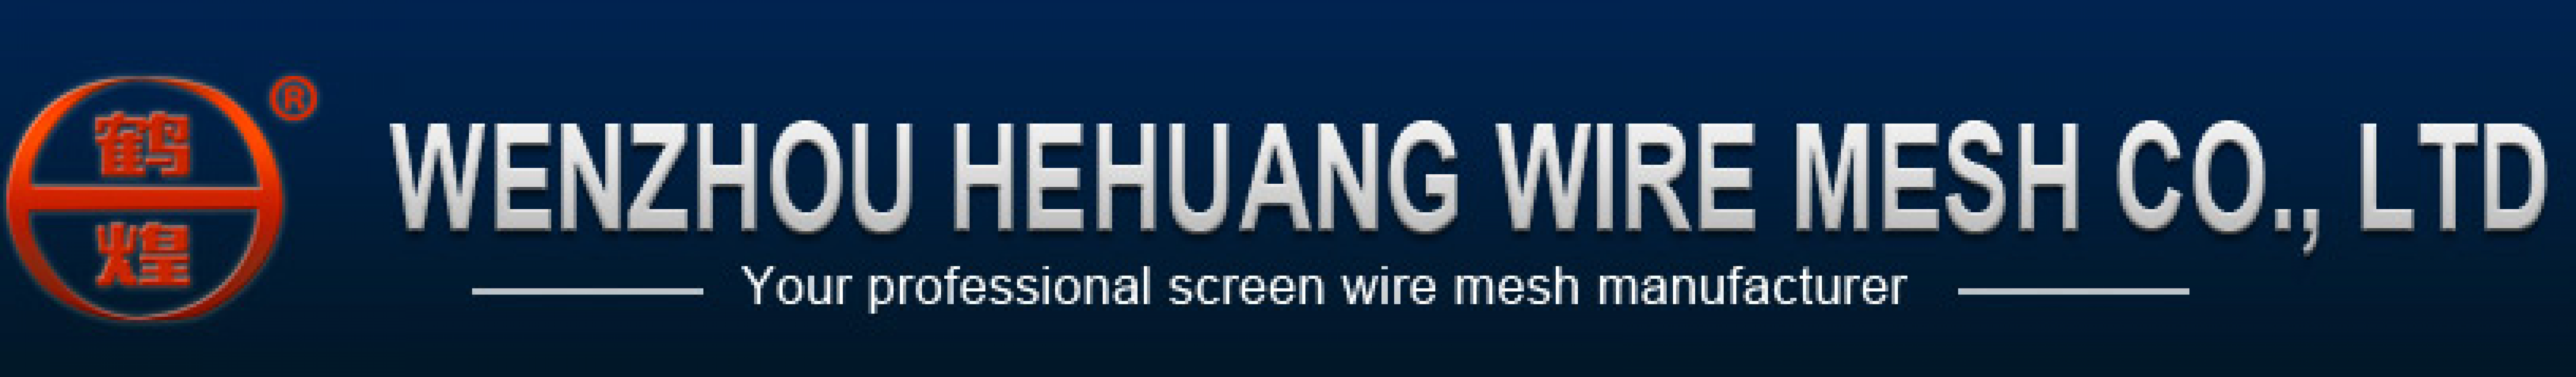 Wenzhou Hehuang WireMesh Co., Ltd.